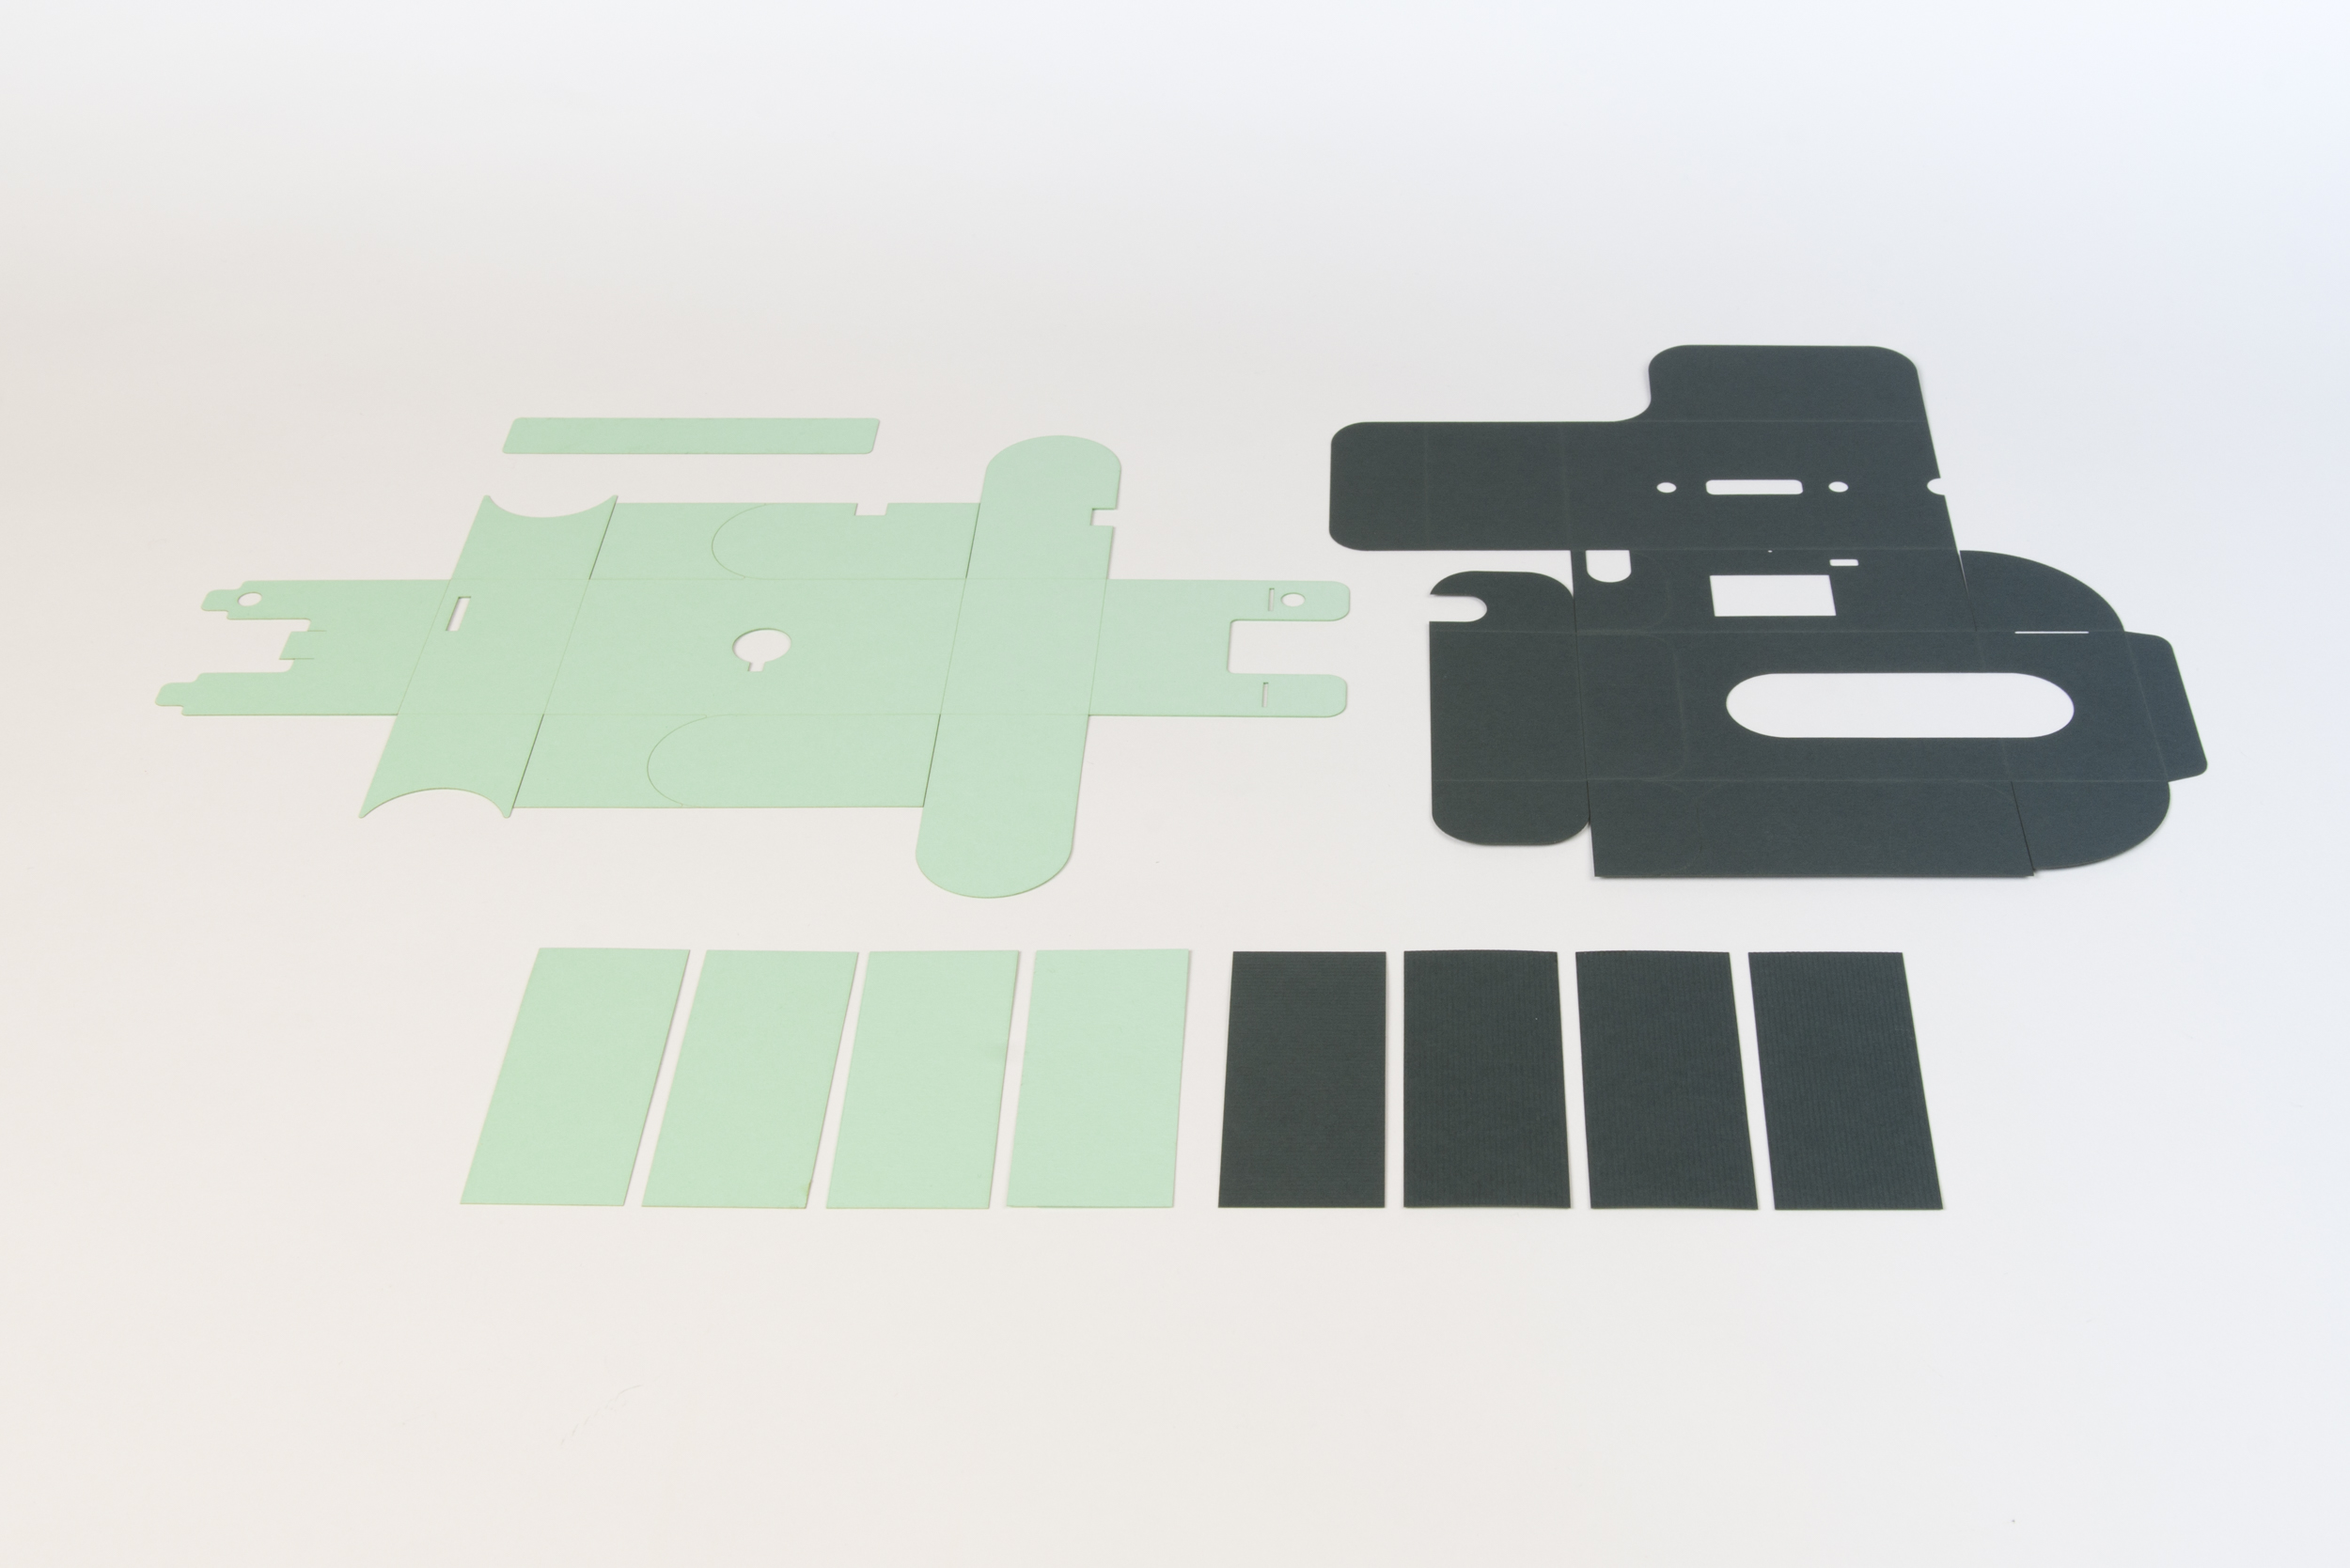 Step 1  Lasercut or cut by hand the paper components